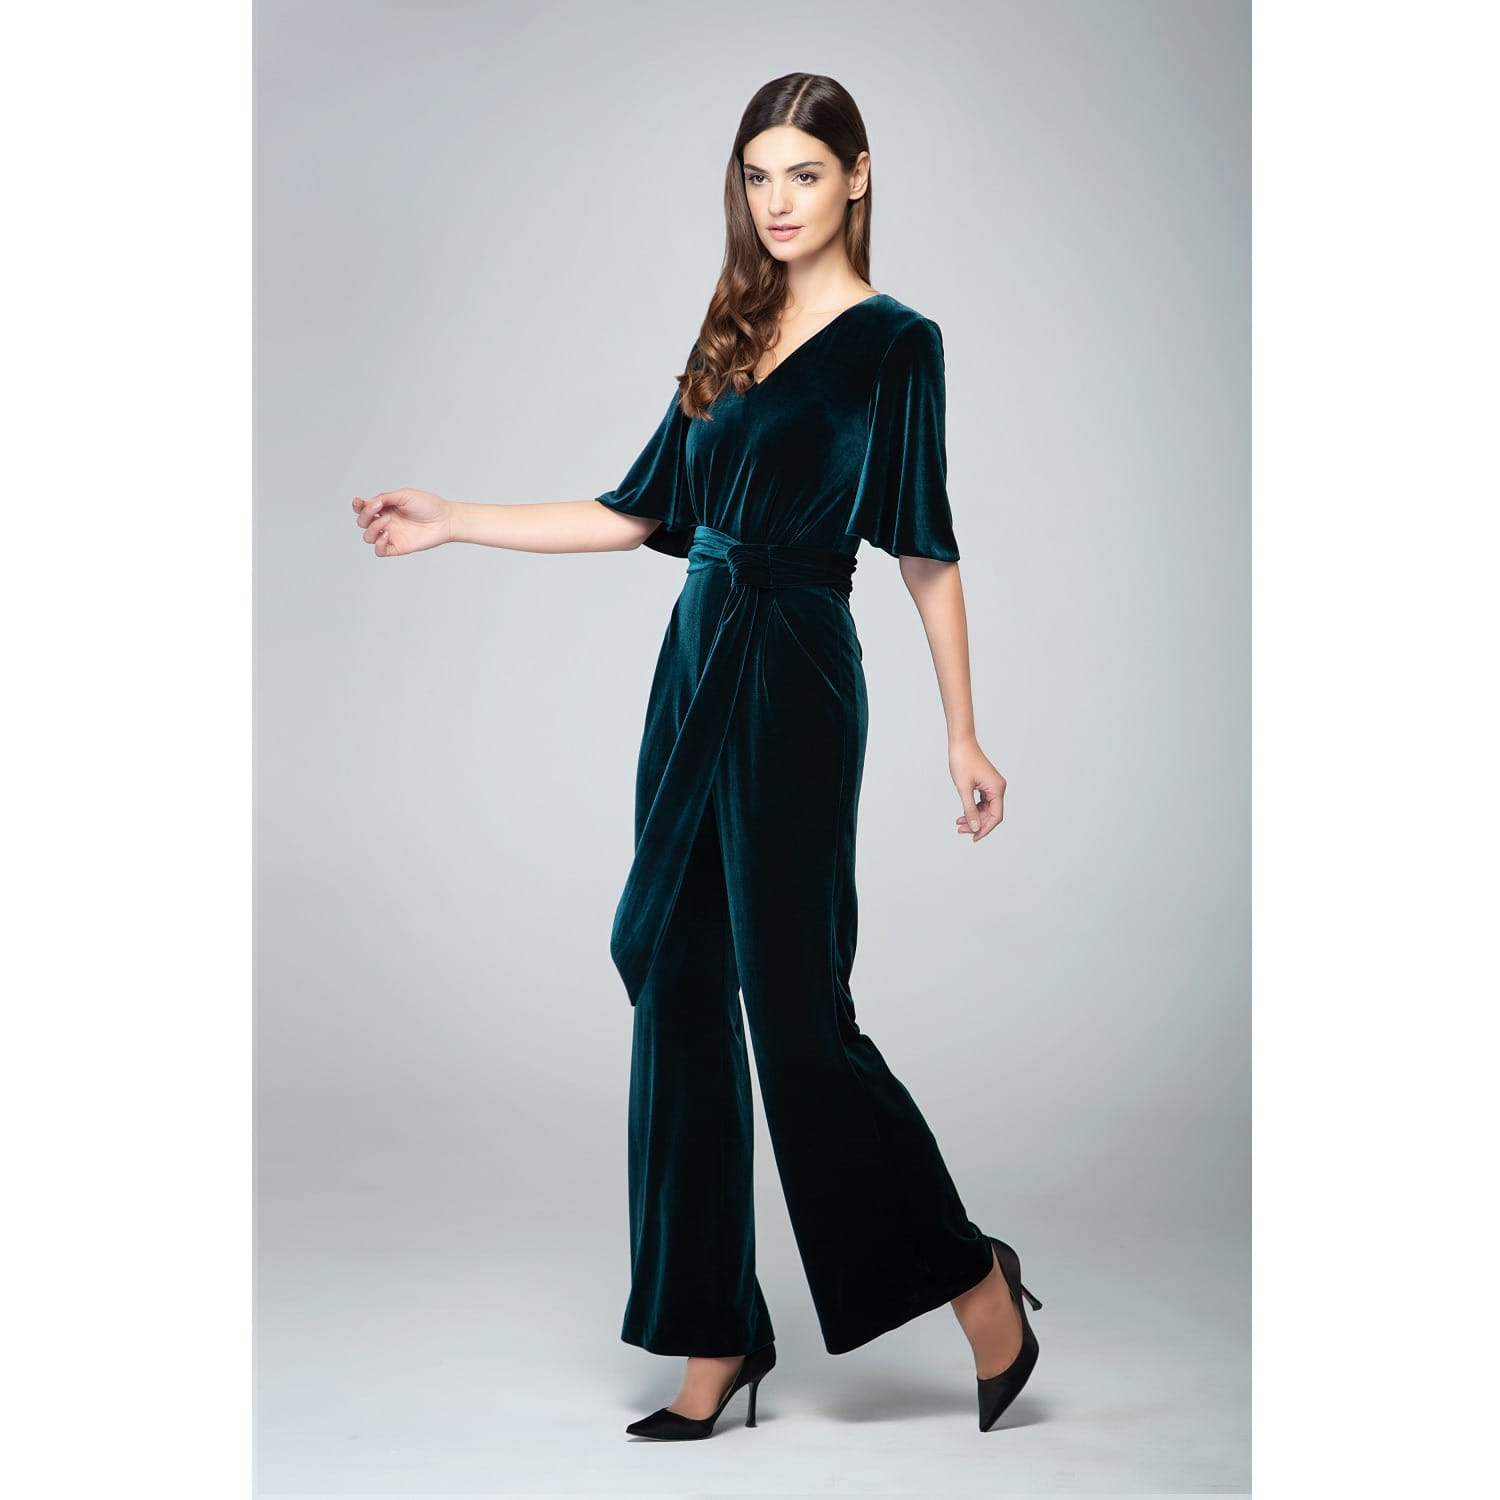 Layla Velvet Jumpsuit With Bell Sleeves Sash In Emerald Green By Rumour London